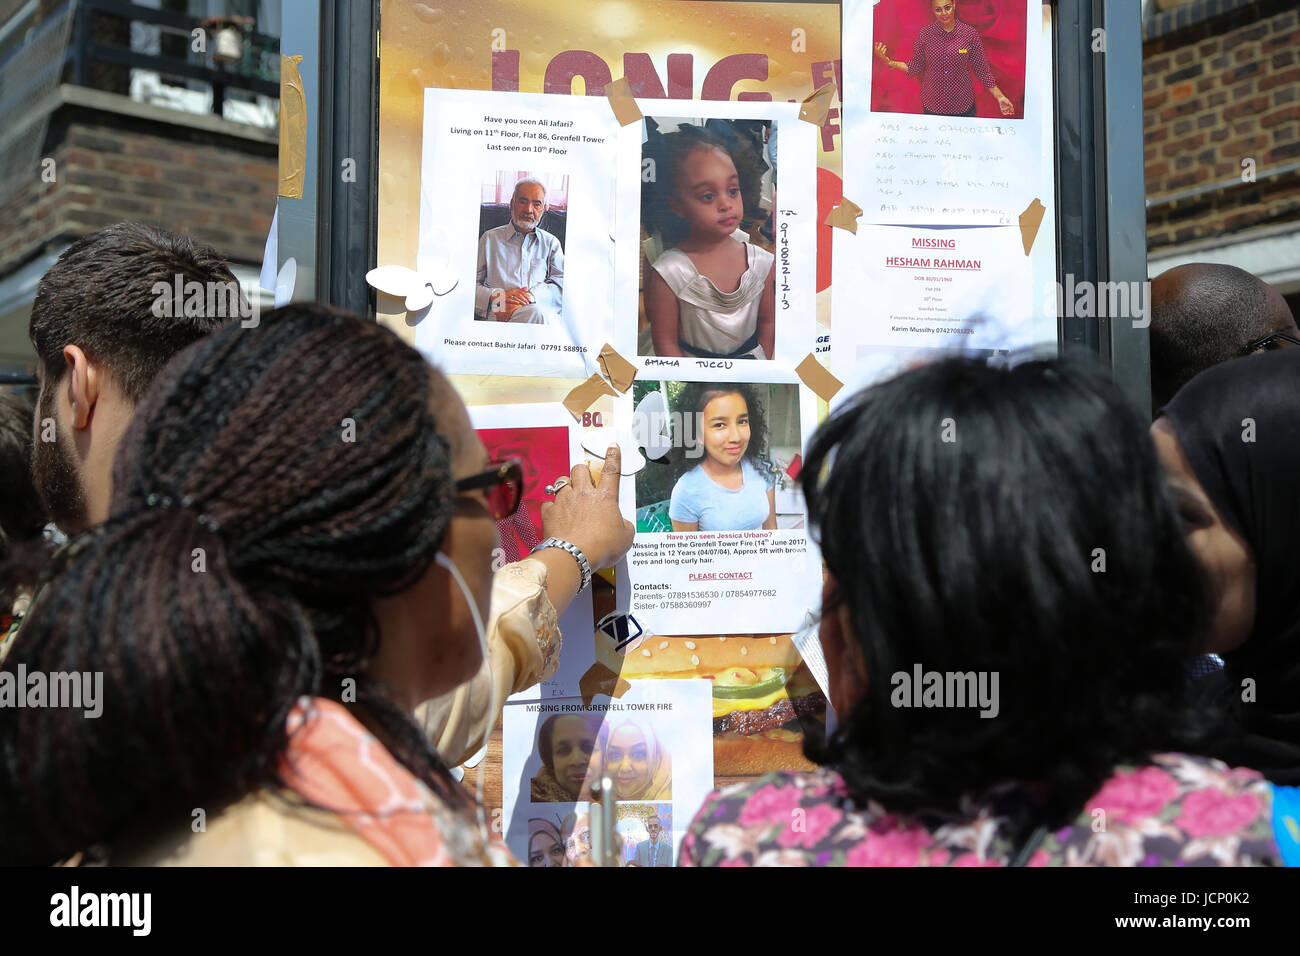 London, UK. 16th June, 2017. Scenes of the aftermath including posters of missing people around the Grenfell Tower - Stock Image